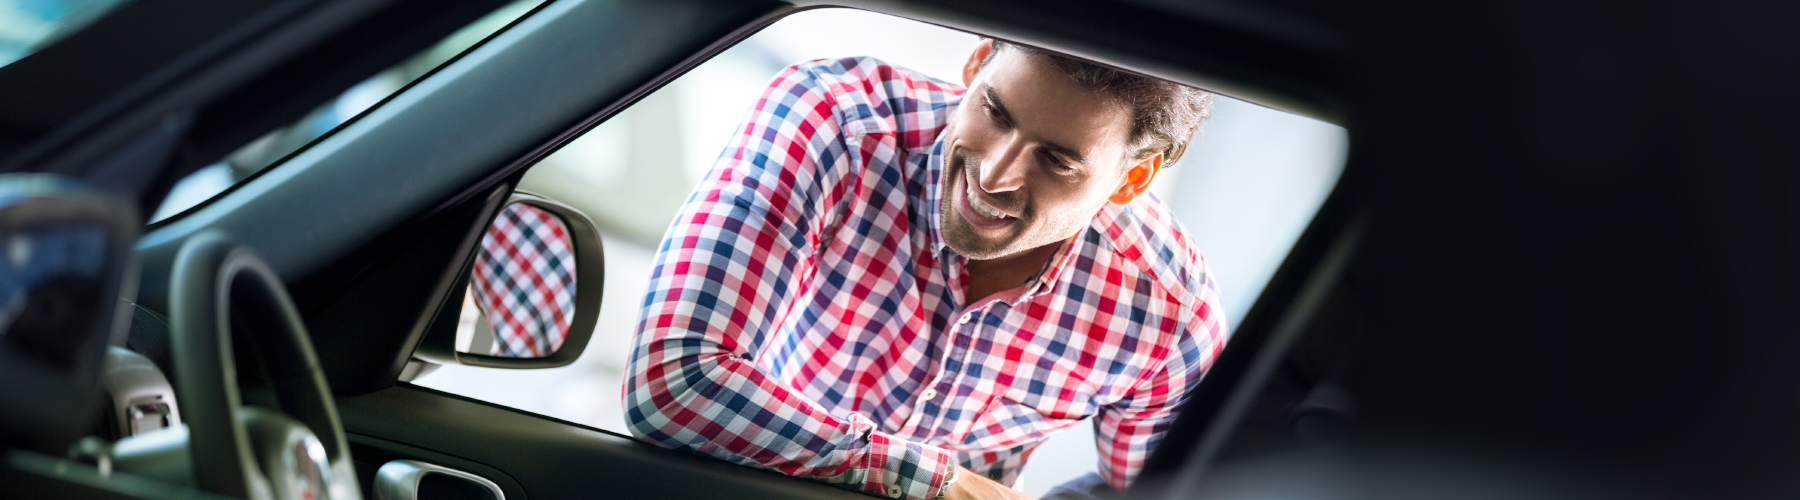 Customer checking the car for rent